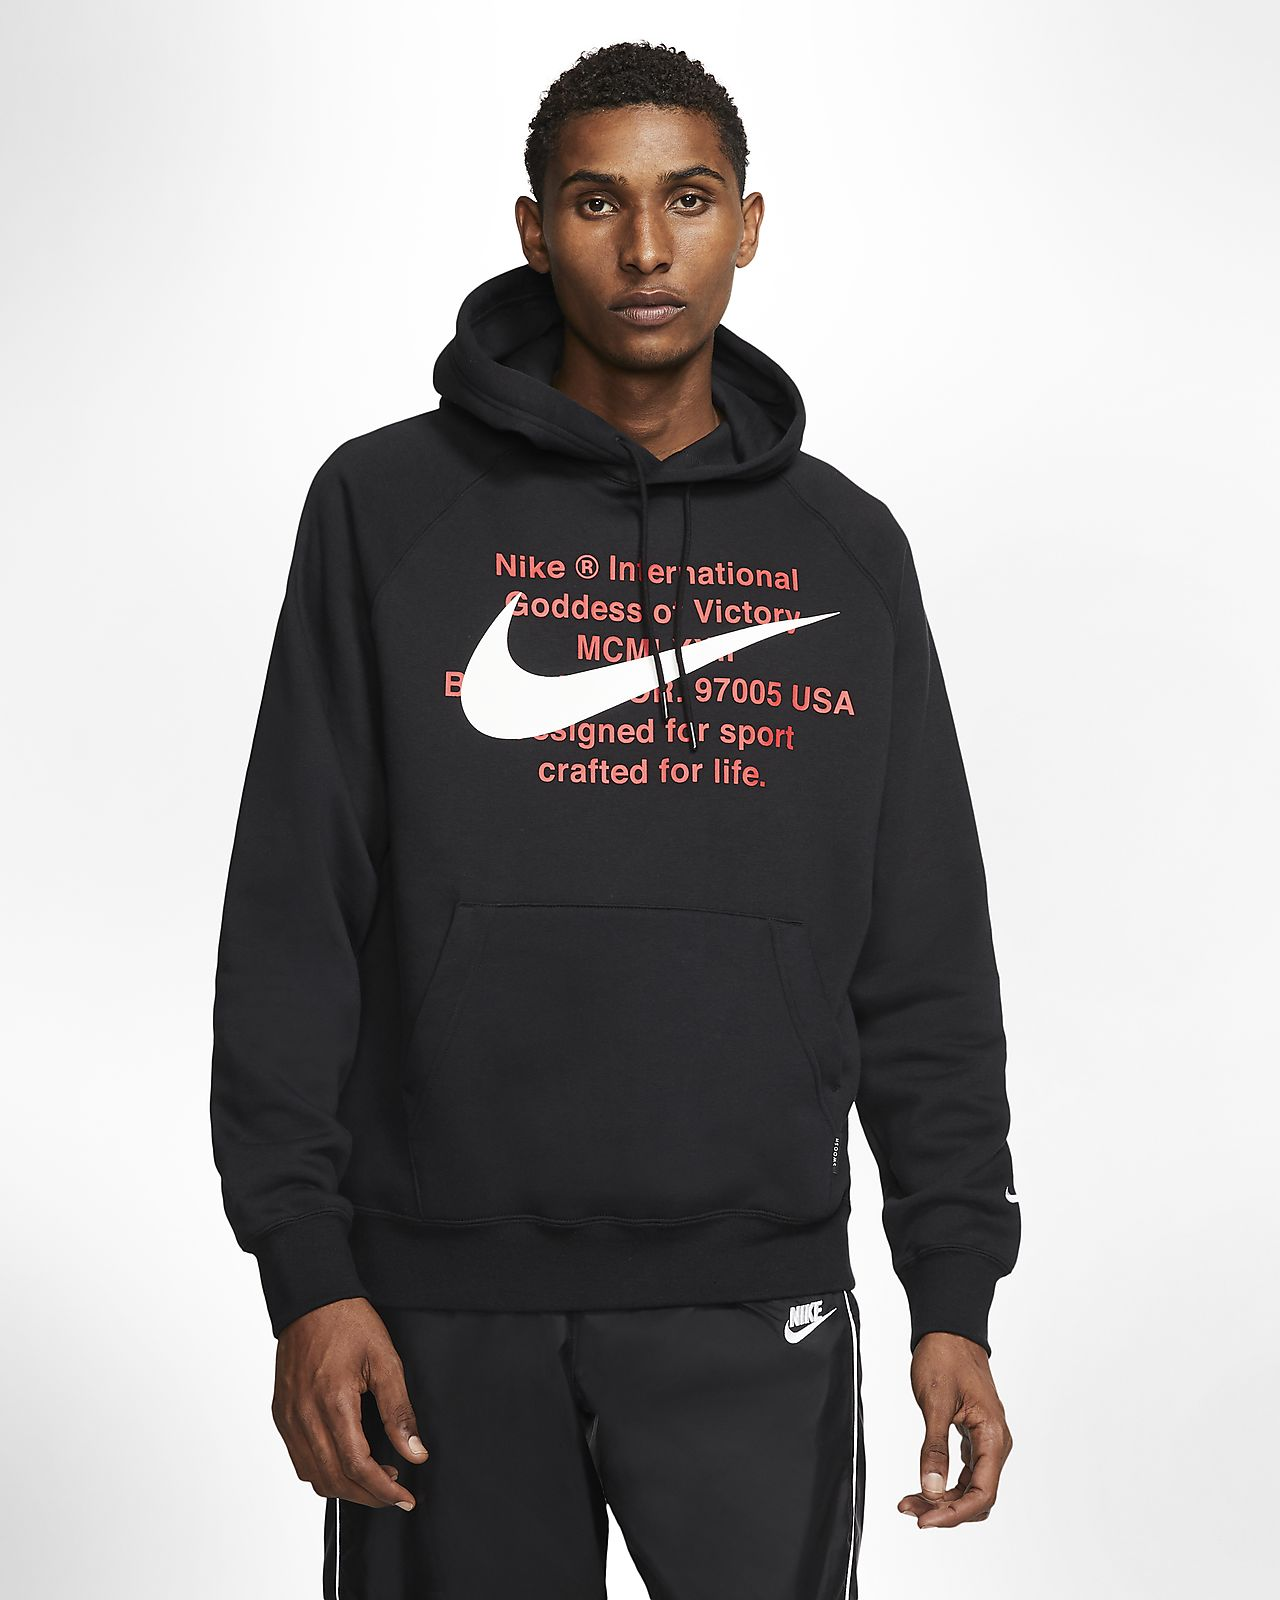 nike hoodie with swoosh all over